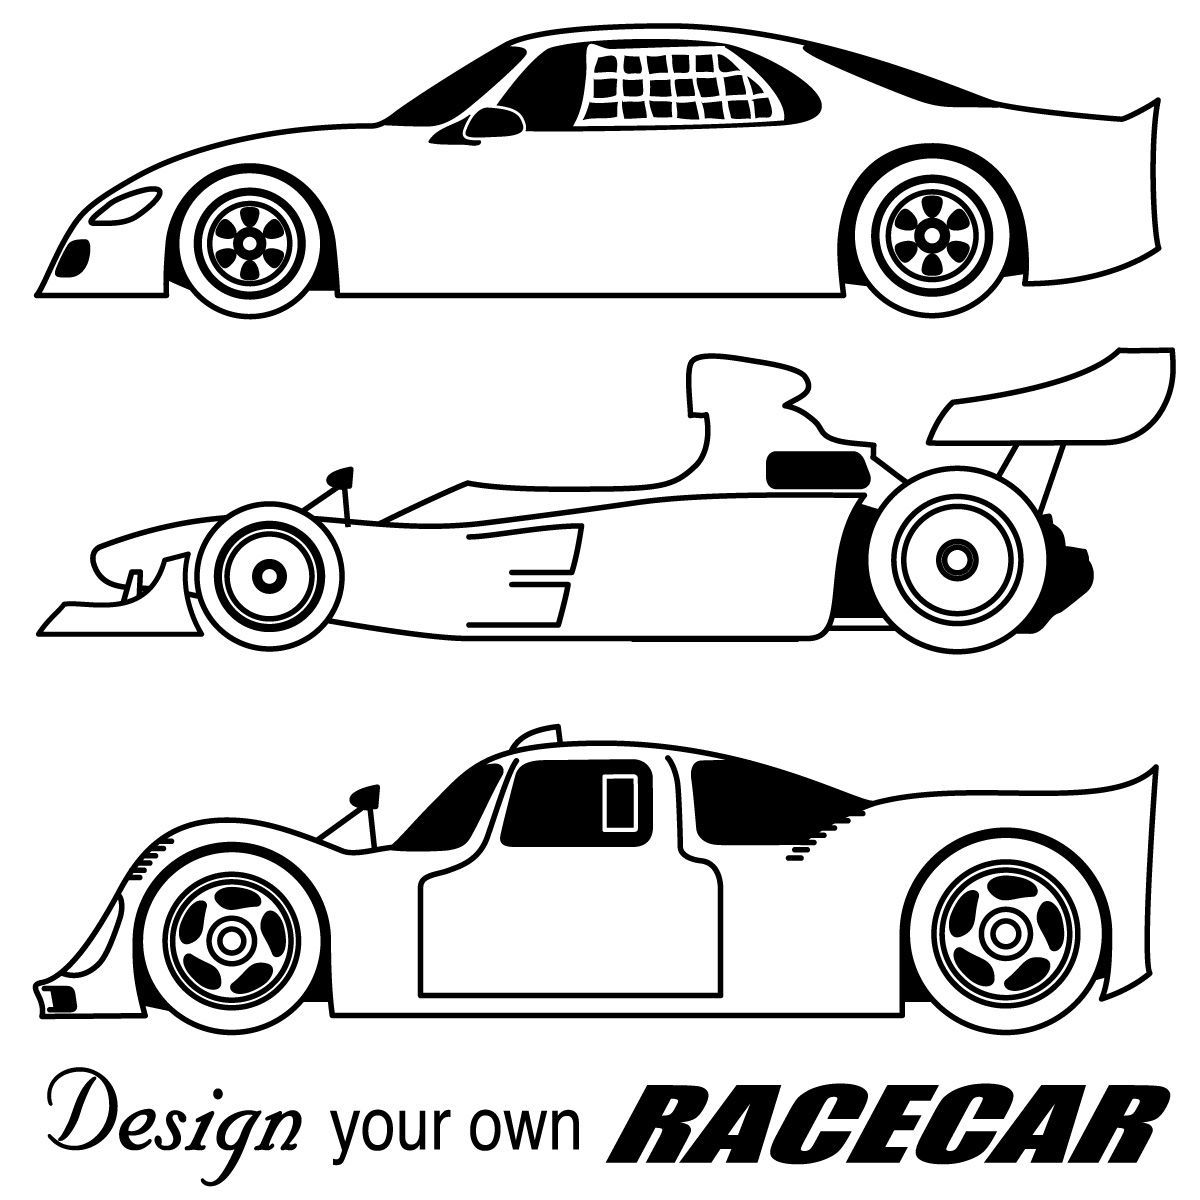 Nascar clipart book. Black and white racing